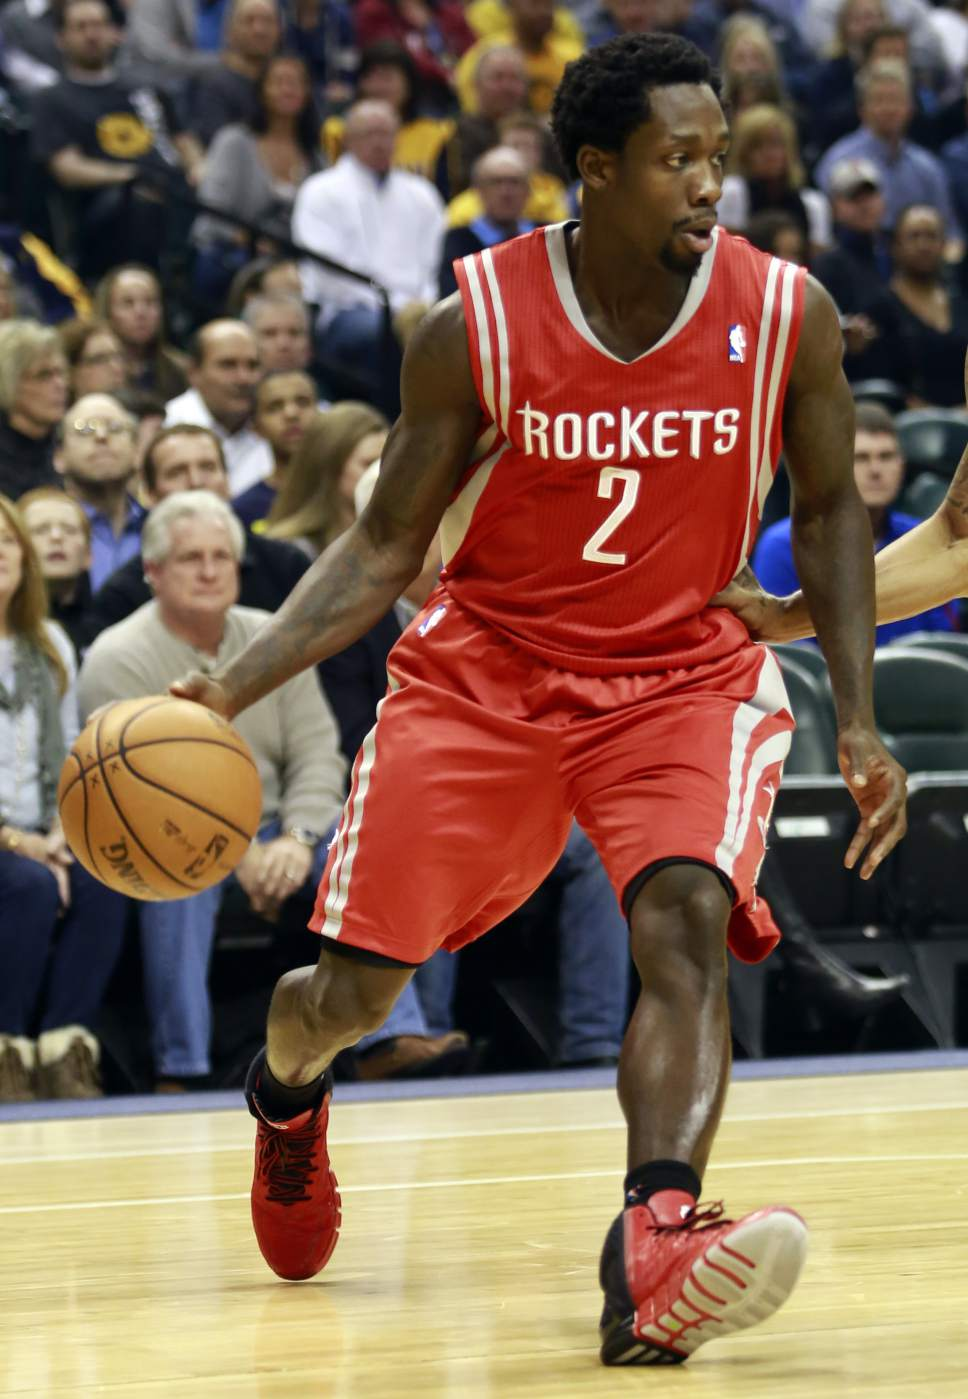 Houston Rockets guard Patrick Beverley dribbles the basketball against the Indiana Pacers in the first half of an NBA basketball game in Indianapolis, Friday, Dec. 20, 2013. (AP Photo/R Brent Smith)